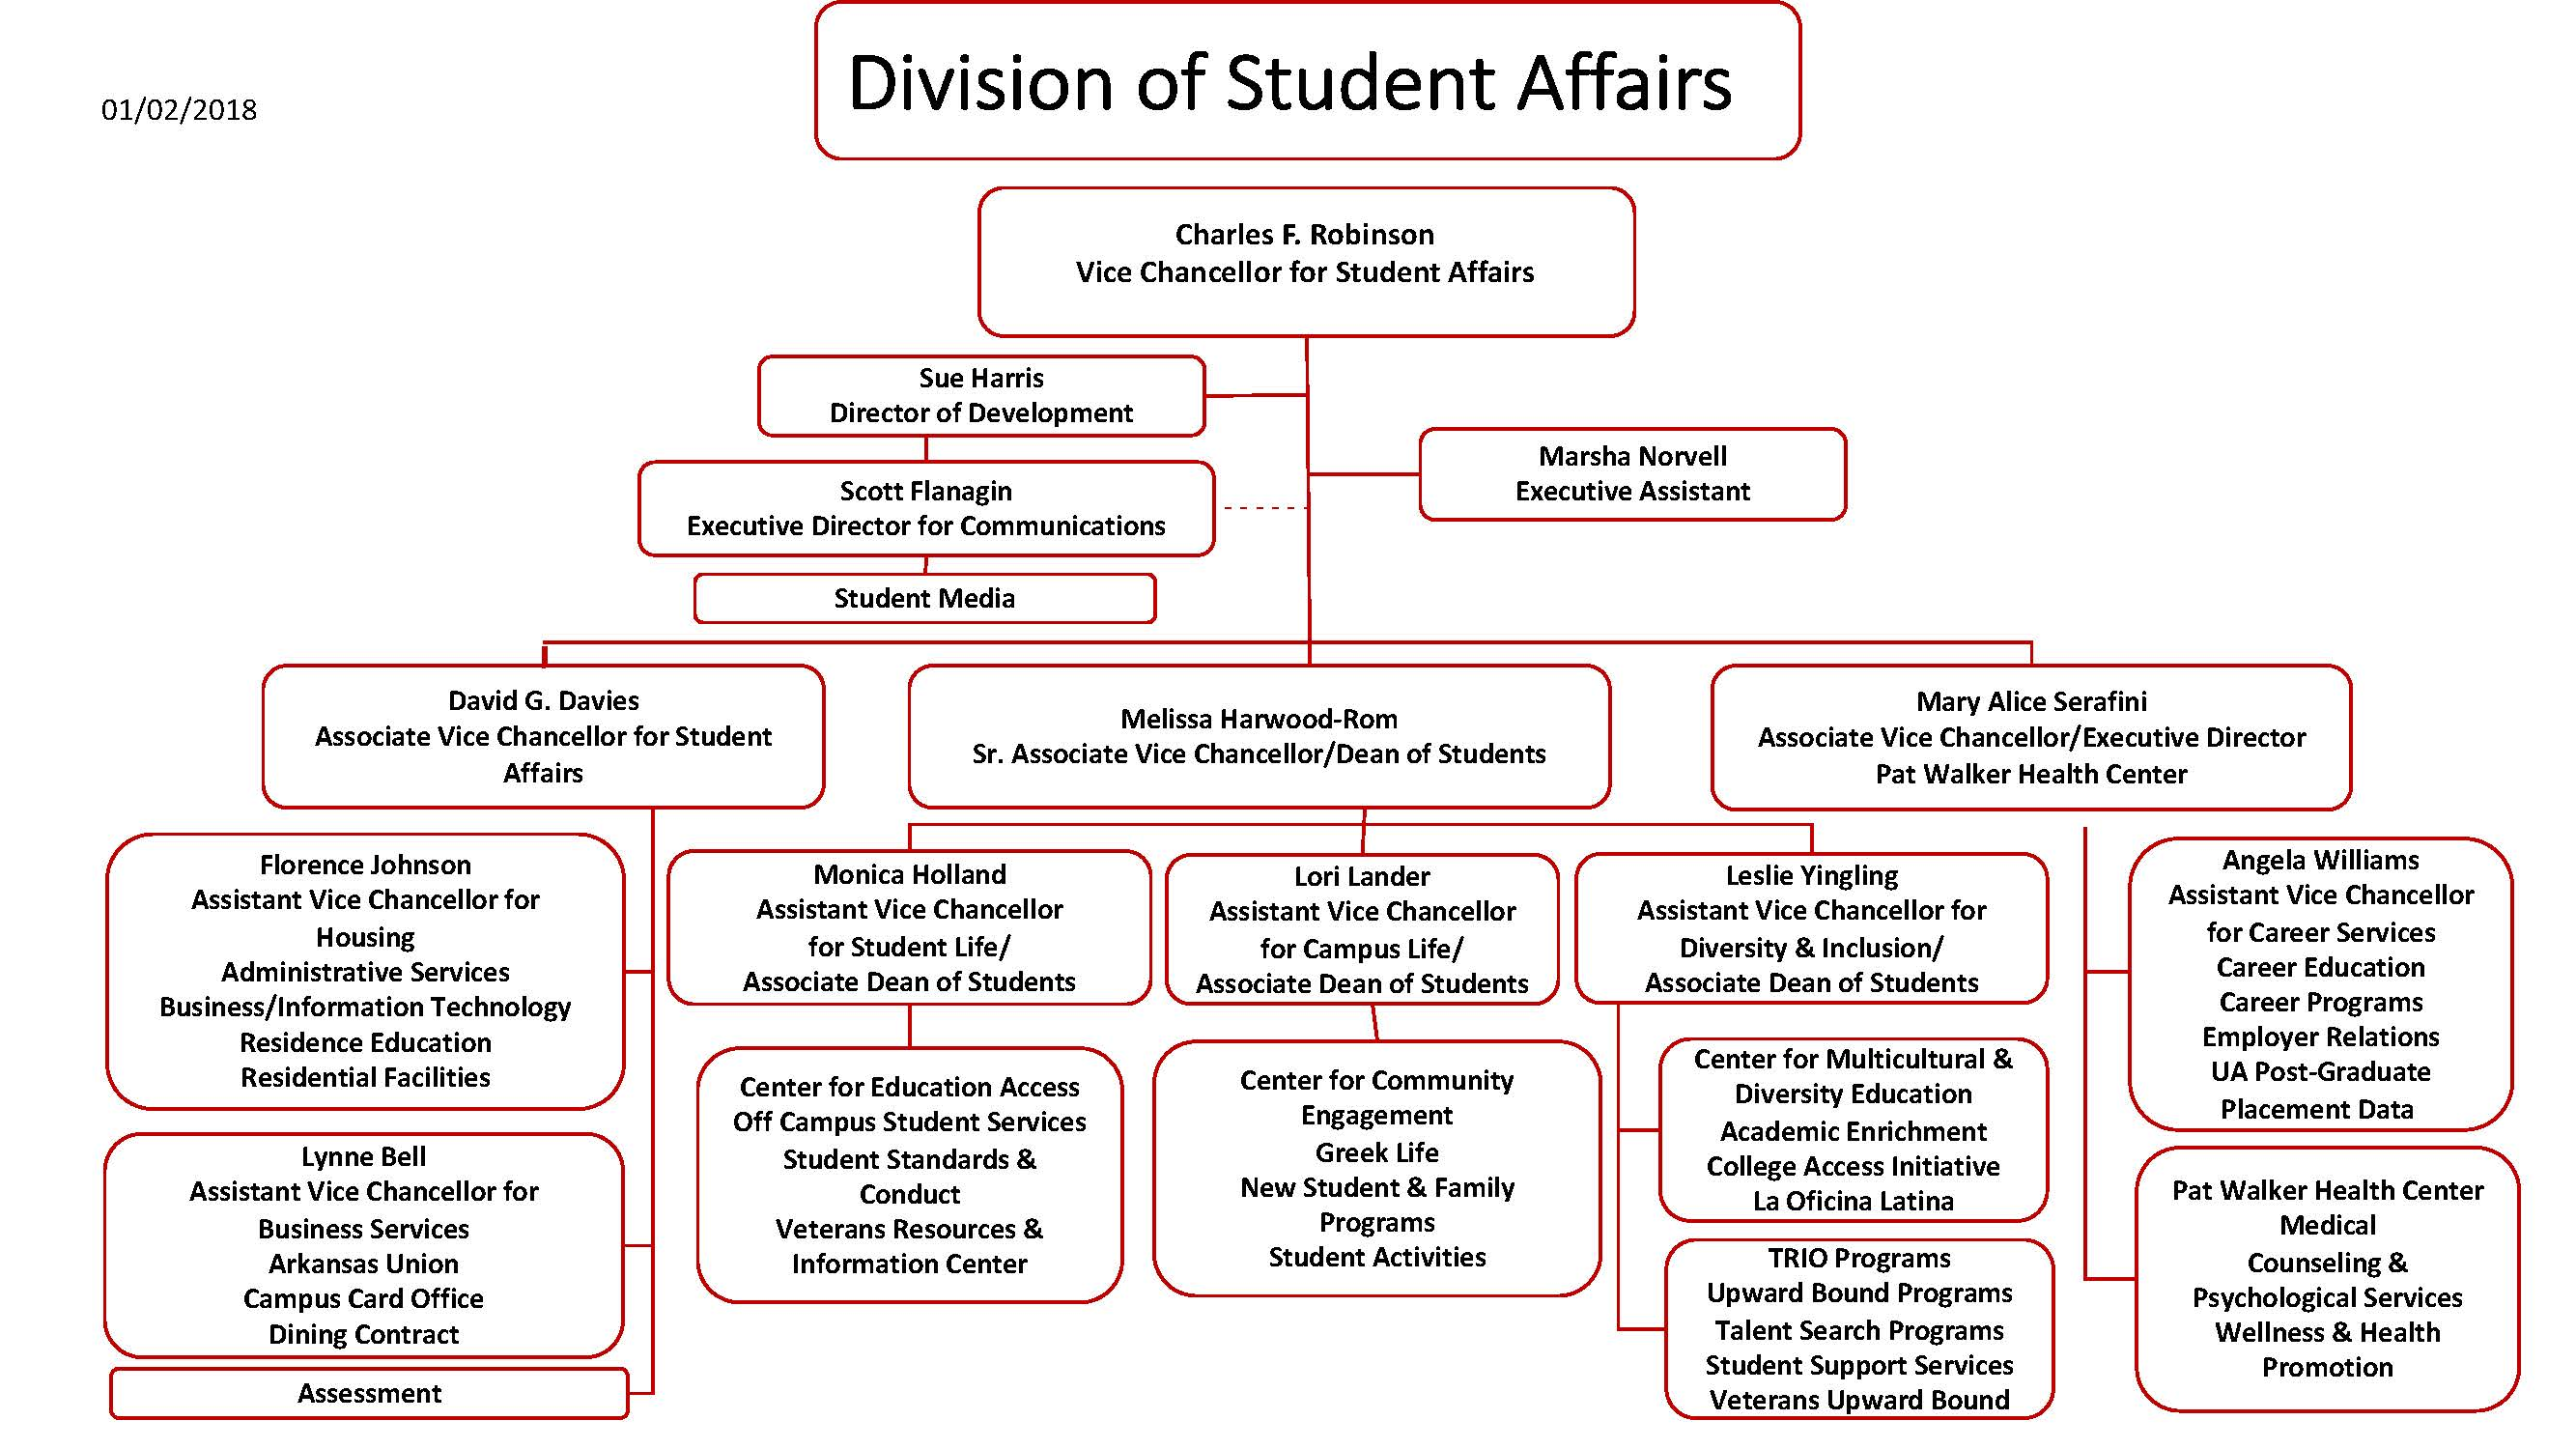 About Student Affairs | Division of Student Affairs ...